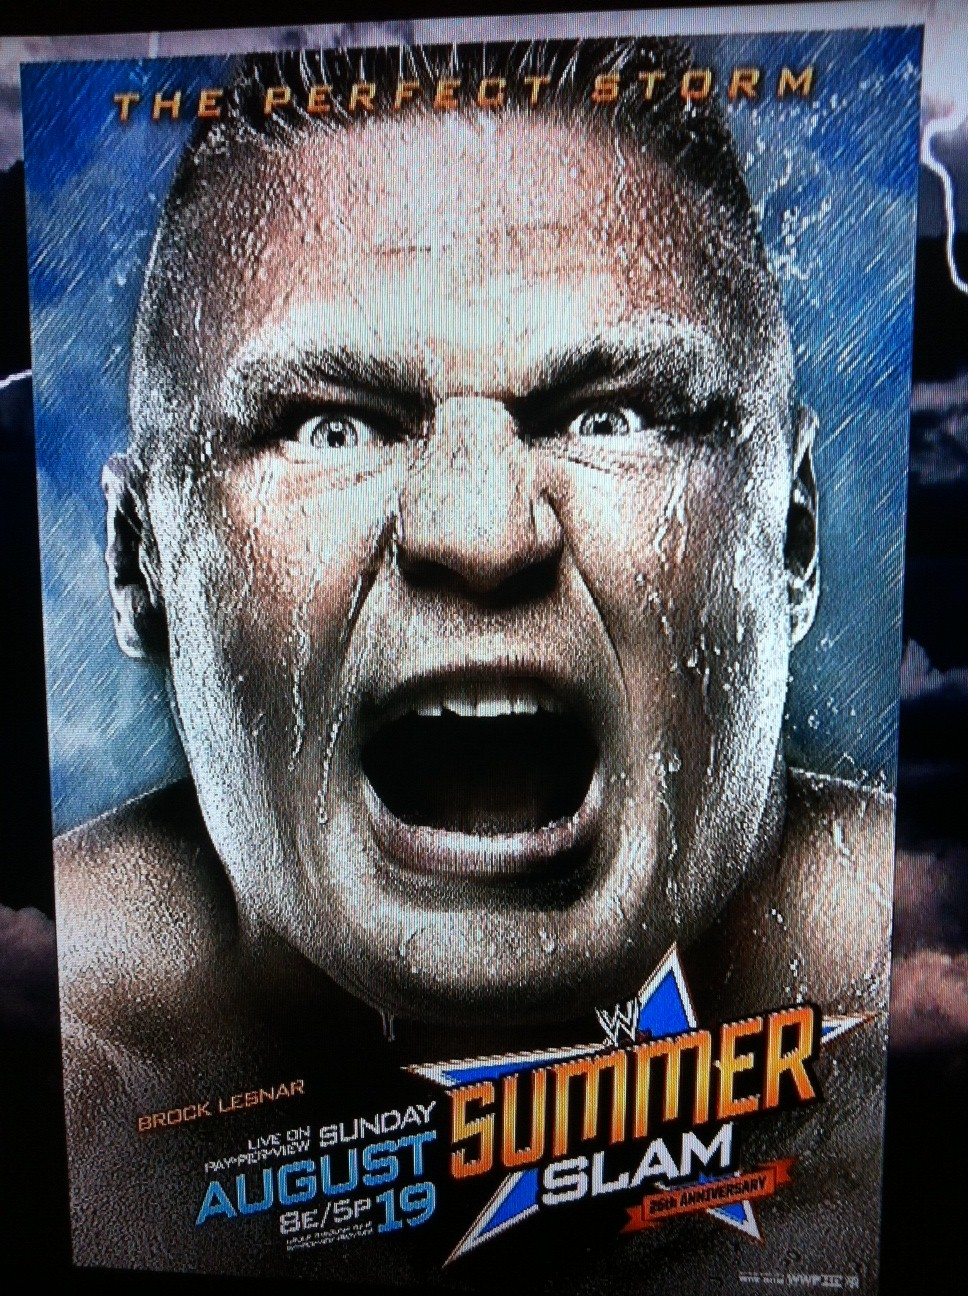 WWE SummerSlam 2012 Poster Revealed Featuring Brock Lesnar ...